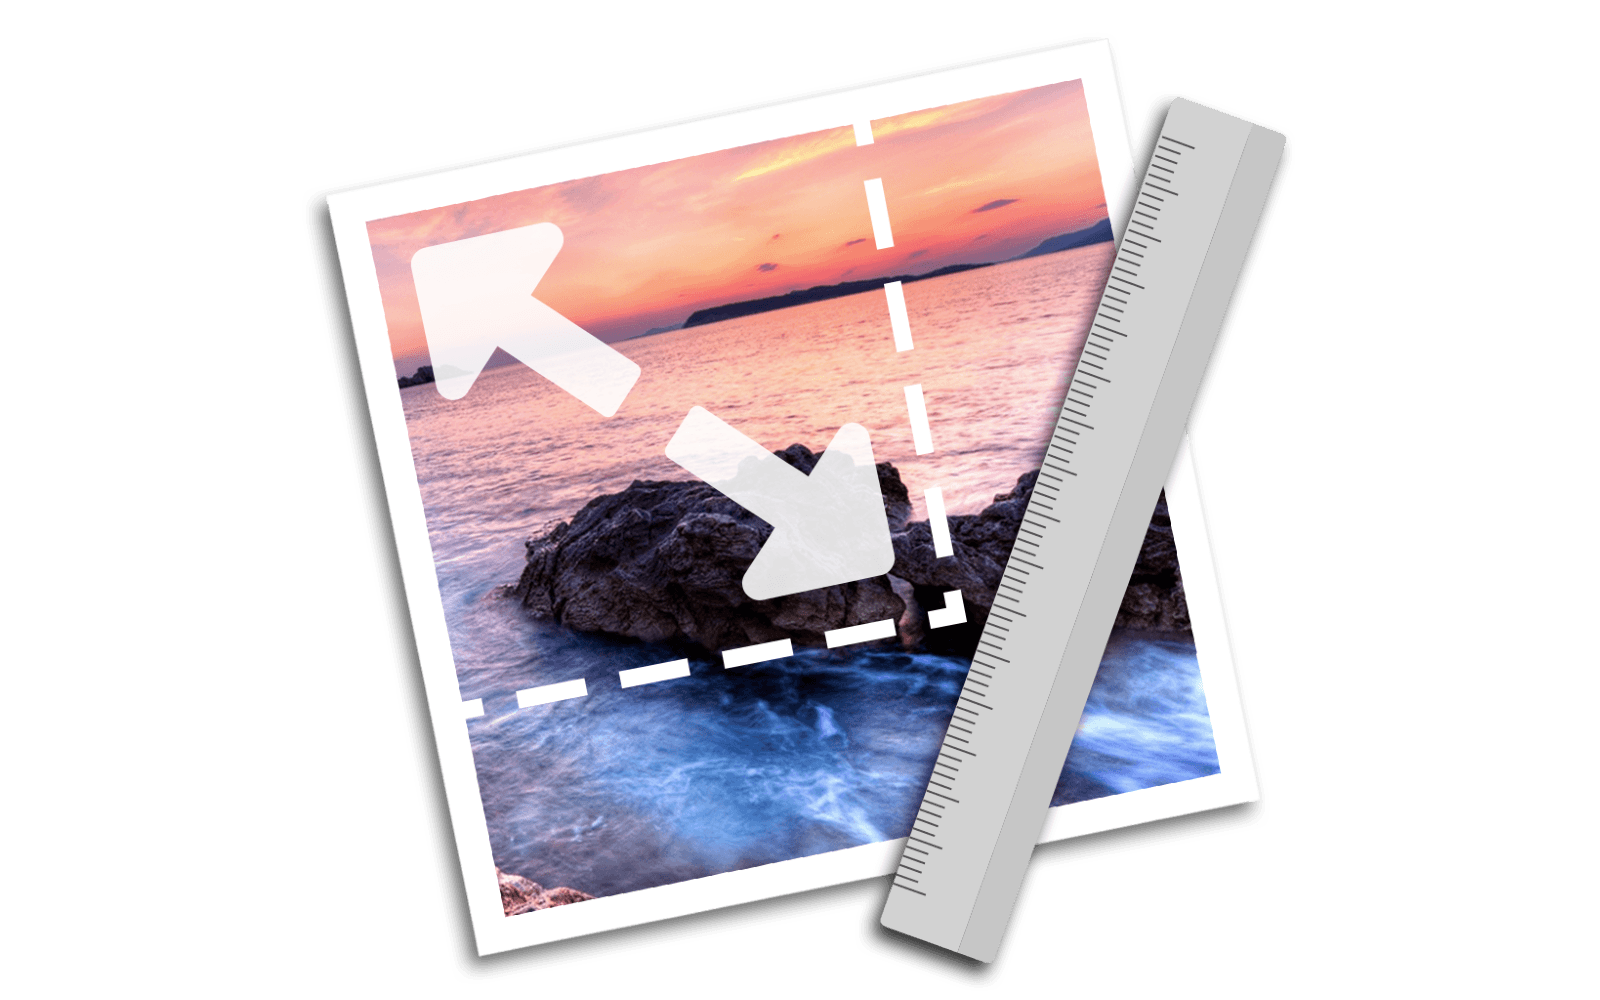 How to Batch Resize Pictures on Mac OS X